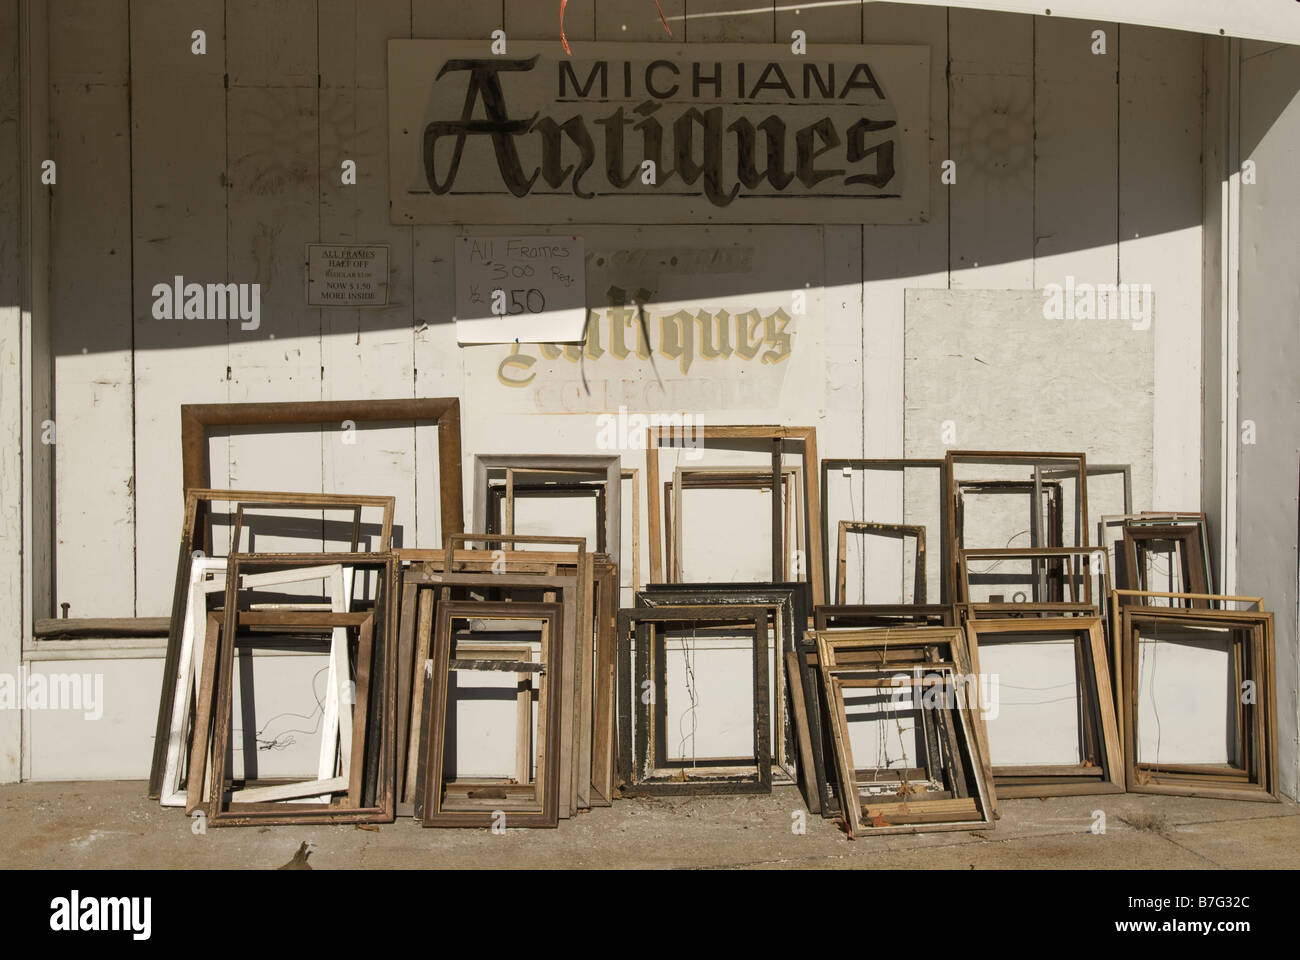 Old picture frames for sale at michiana antiques in michigan usa old picture frames for sale at michiana antiques in michigan usa jeuxipadfo Image collections